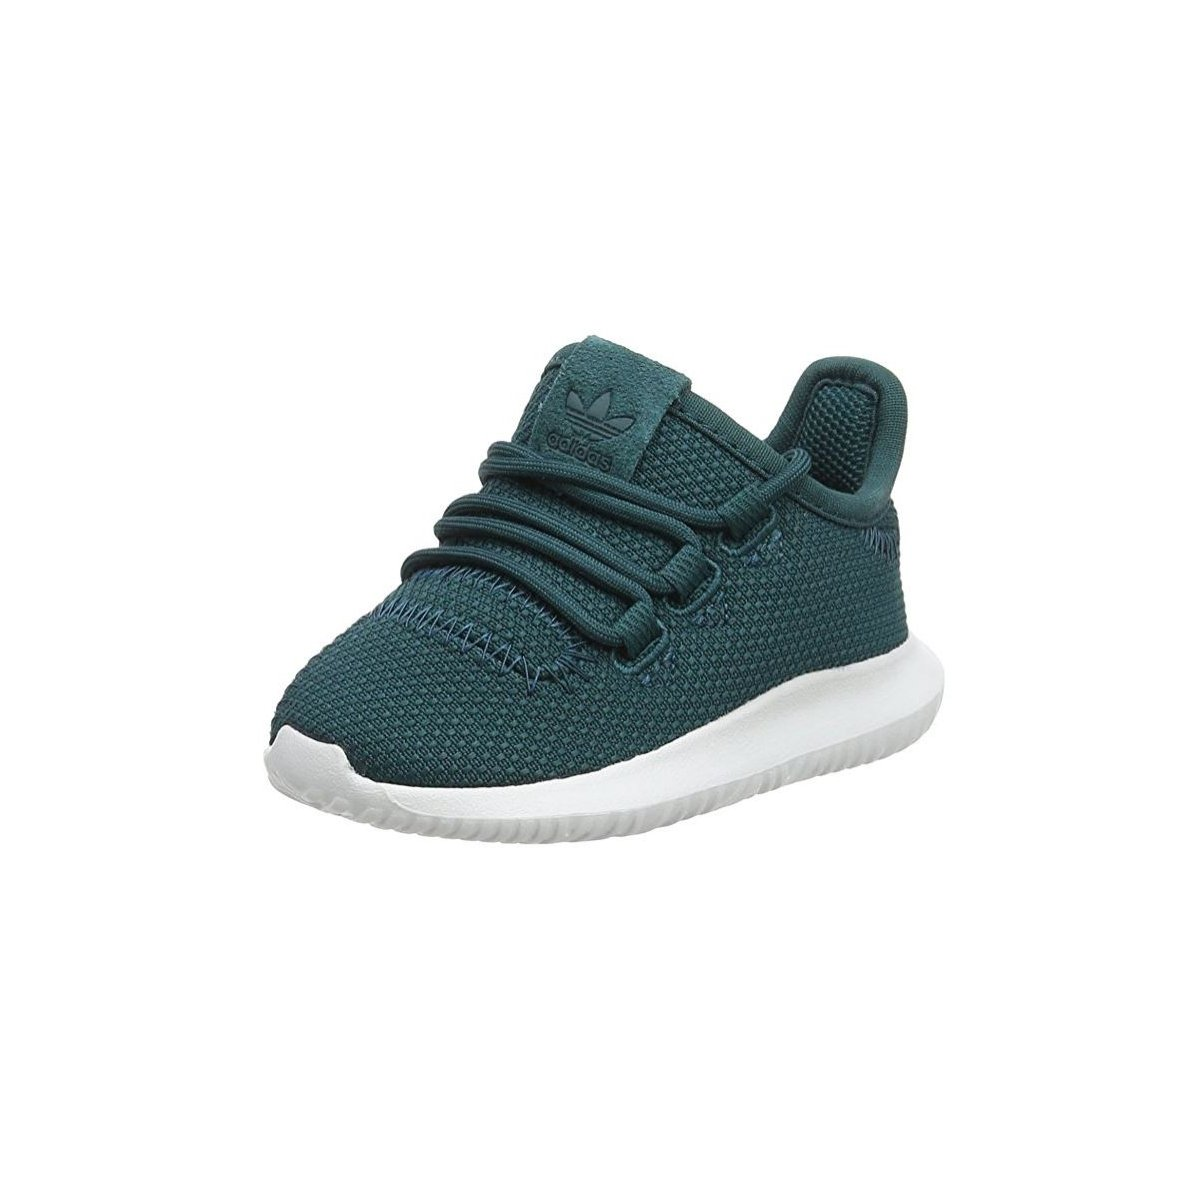 the latest 8ed7e 07d37 Scarpe baby sneakers ADIDAS TUBULAR SHADOW in tessuto verde BB6759 - tualu. org